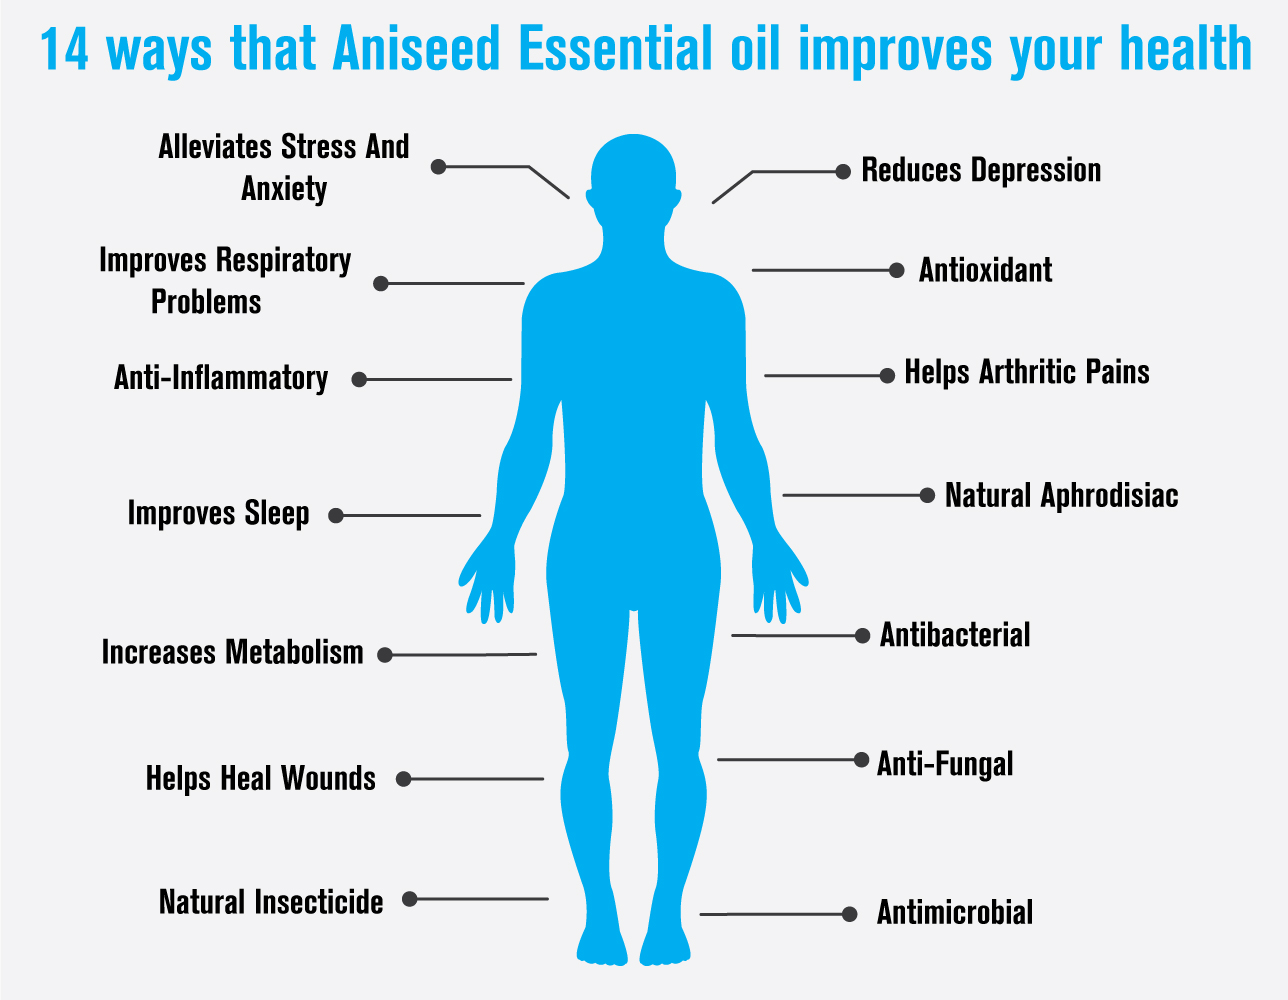 092517 Aniseed essential oil